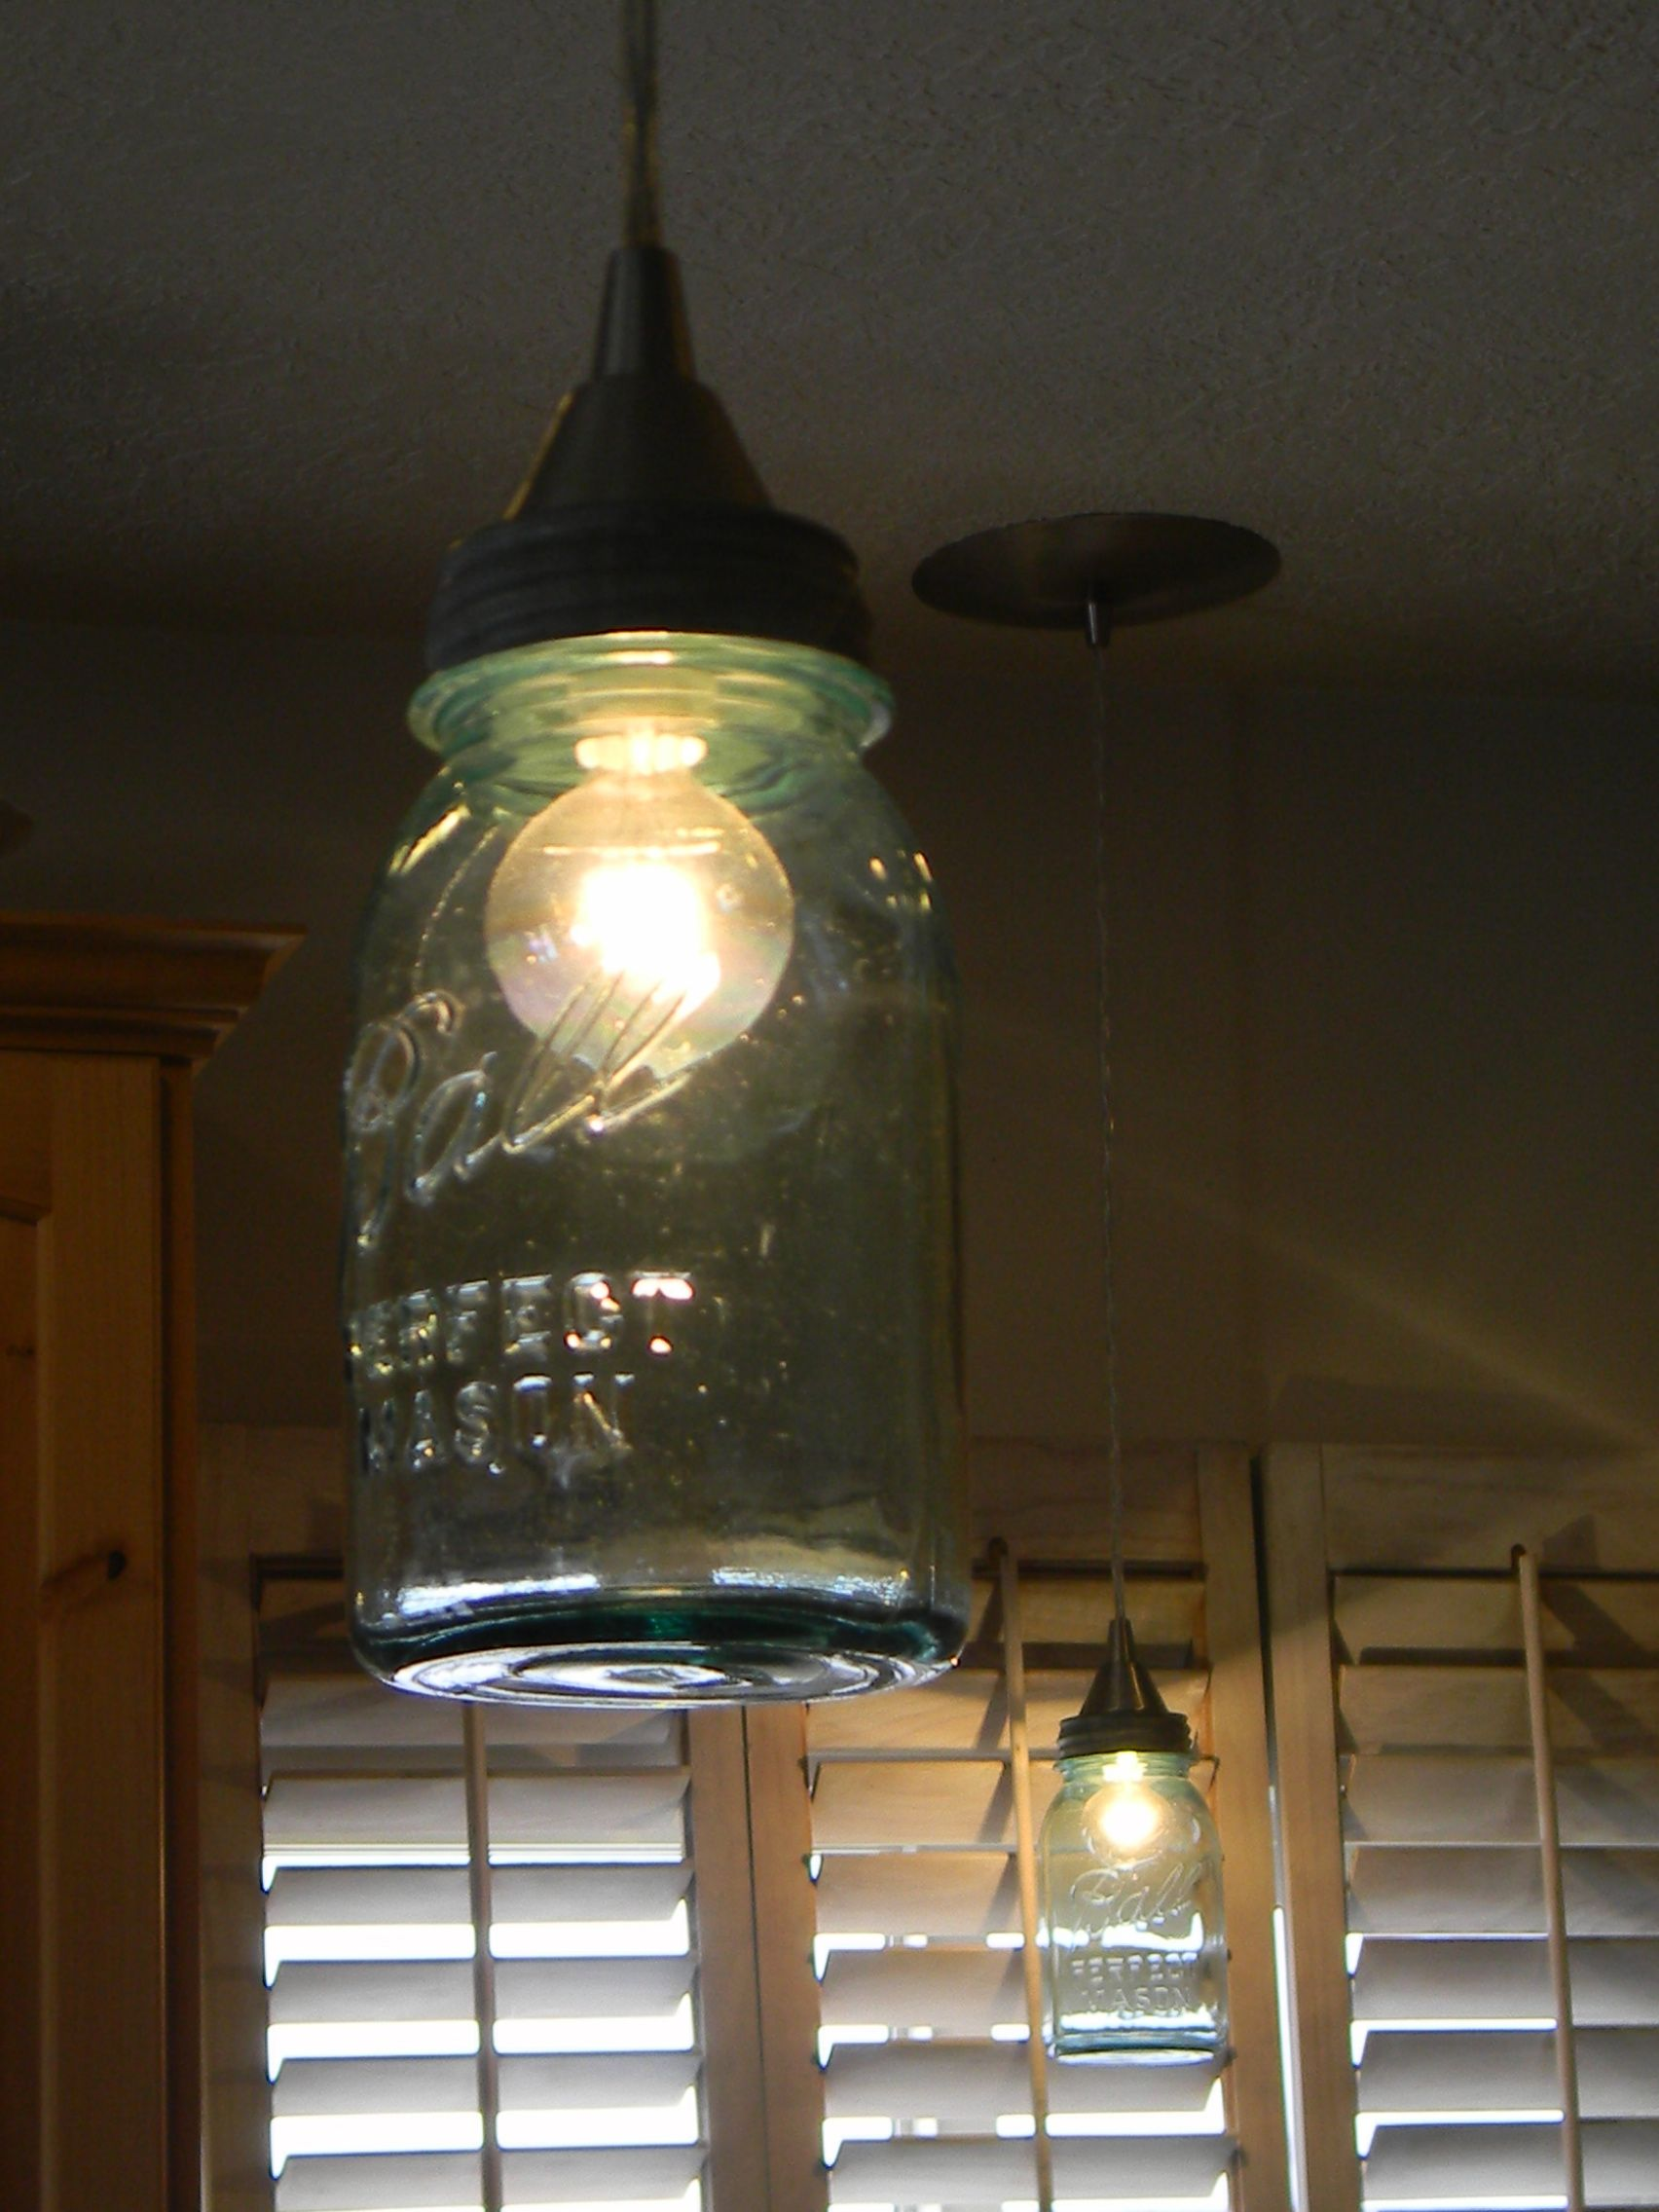 Turn a ball jar into a pendant light id like these for over the turn a ball jar into a pendant light id like these for over the arubaitofo Gallery